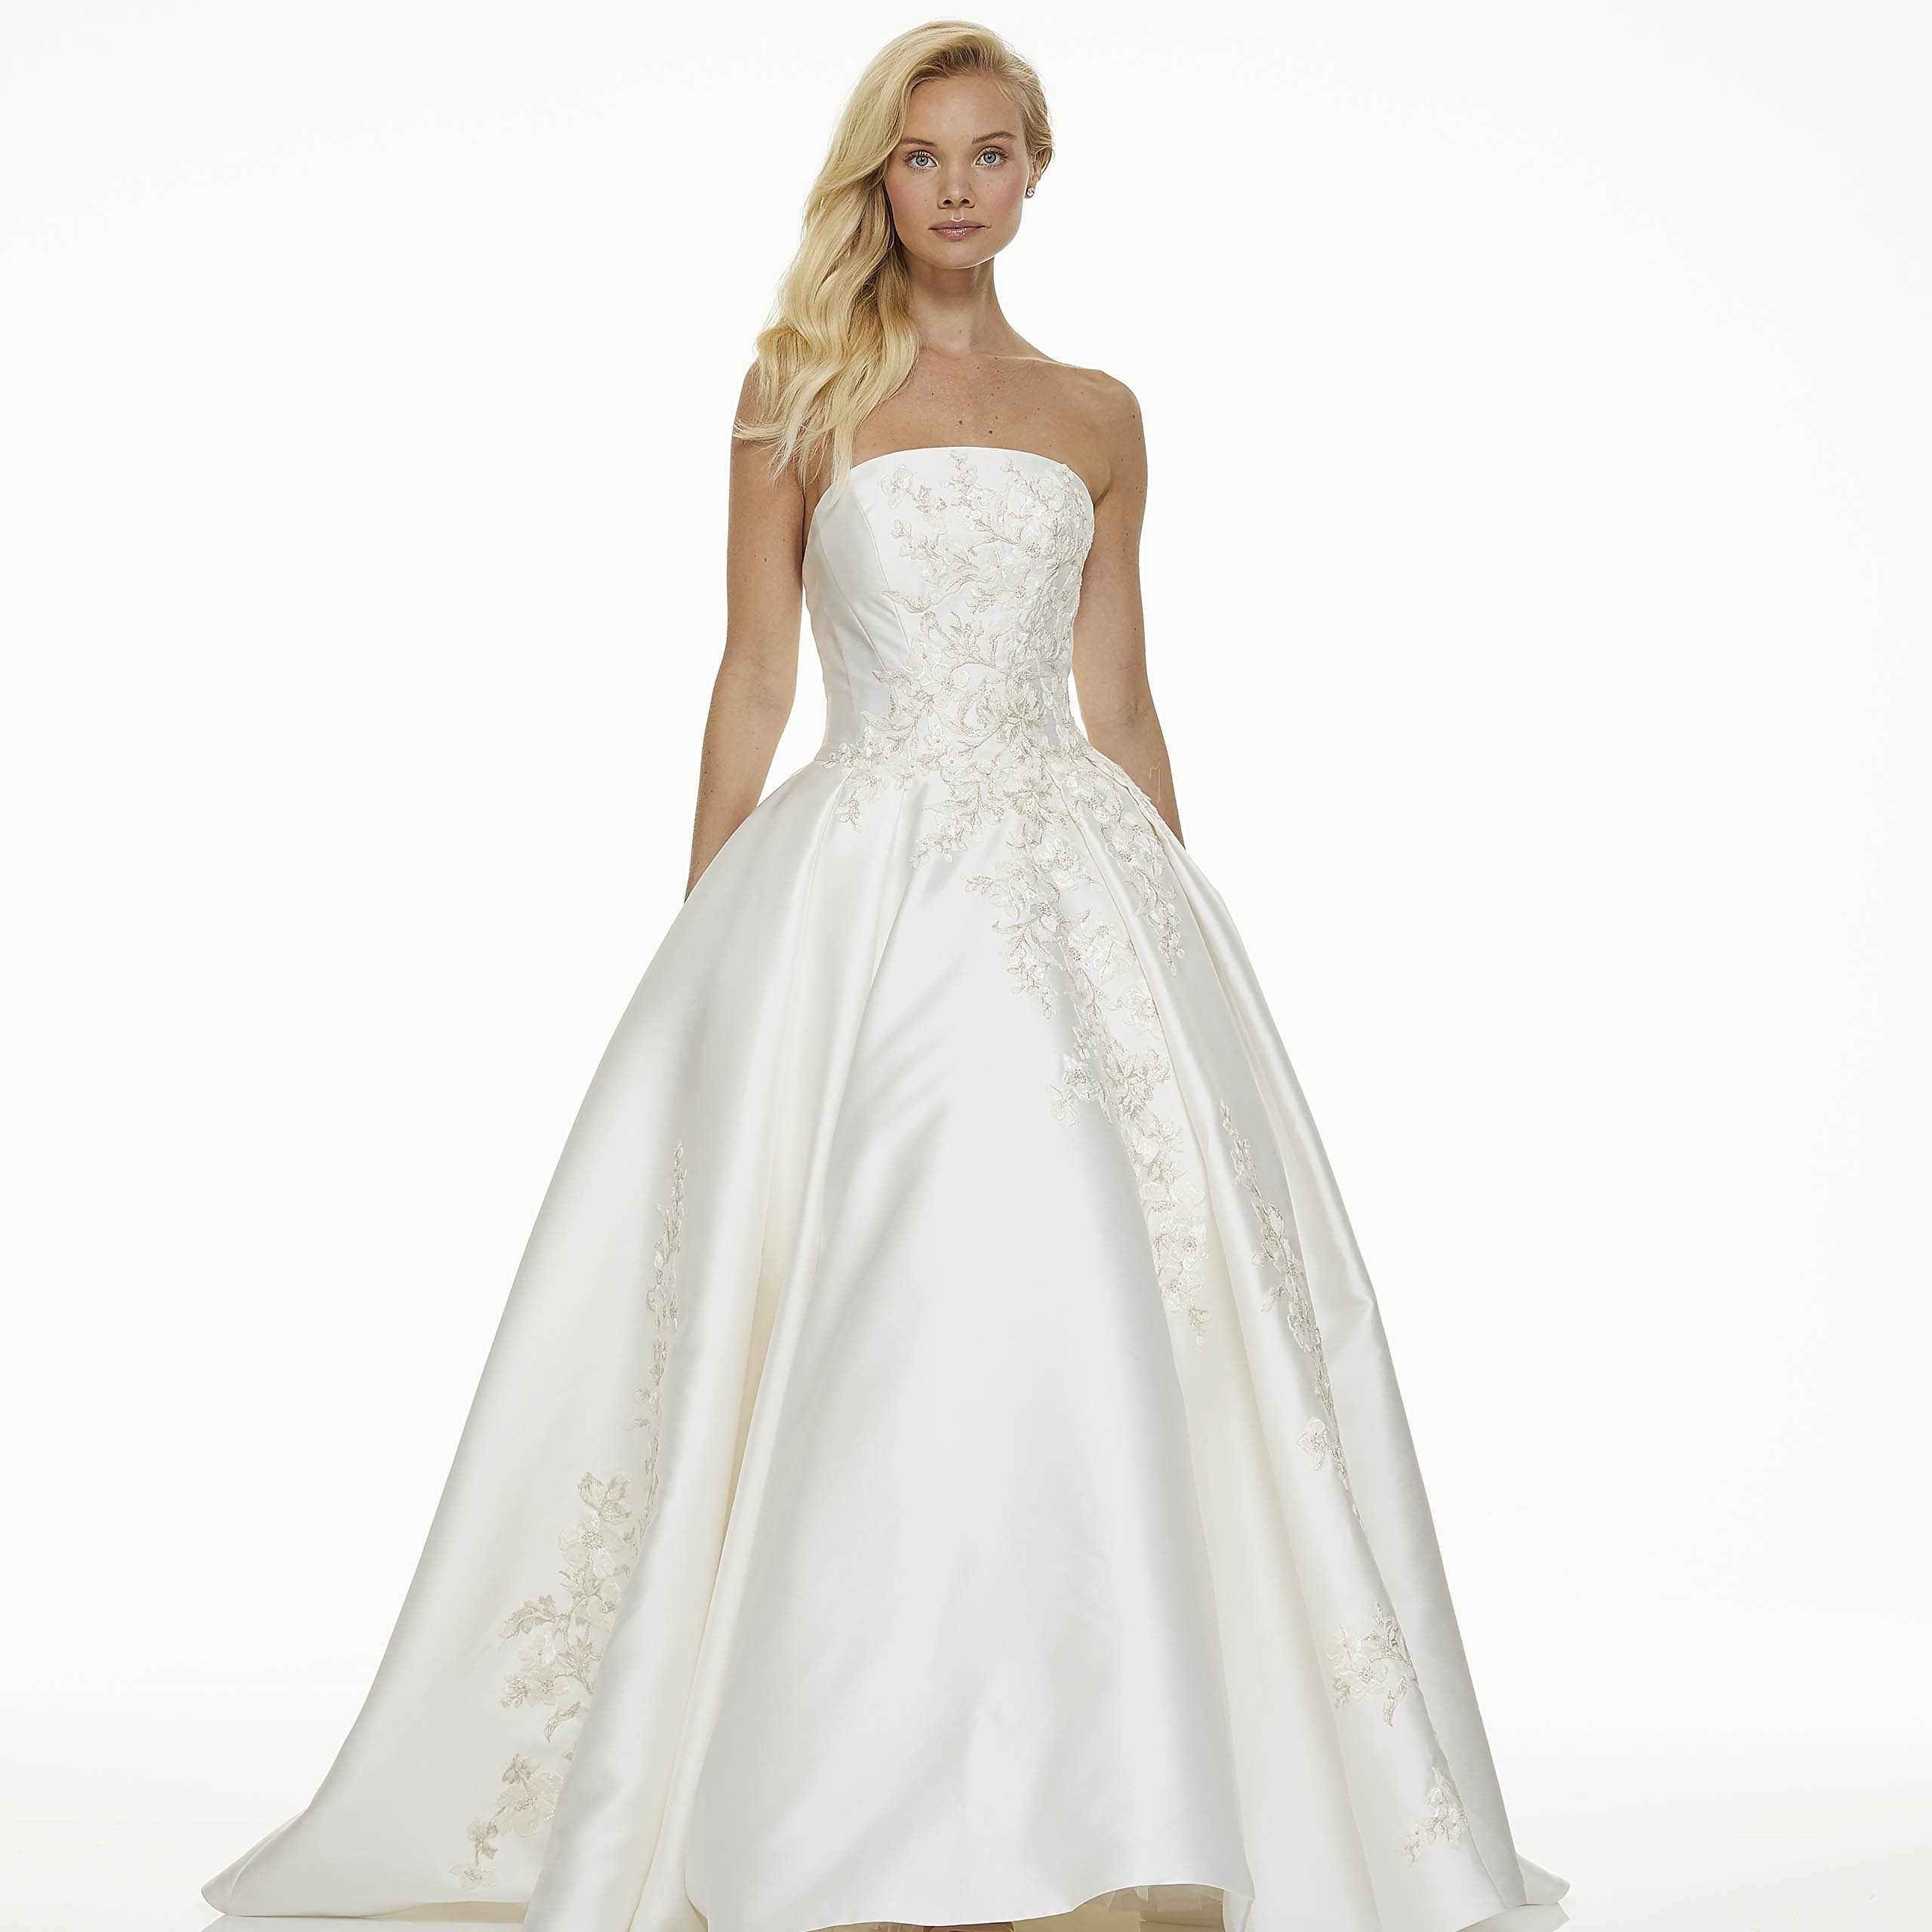 Model in strapless wedding ball gown